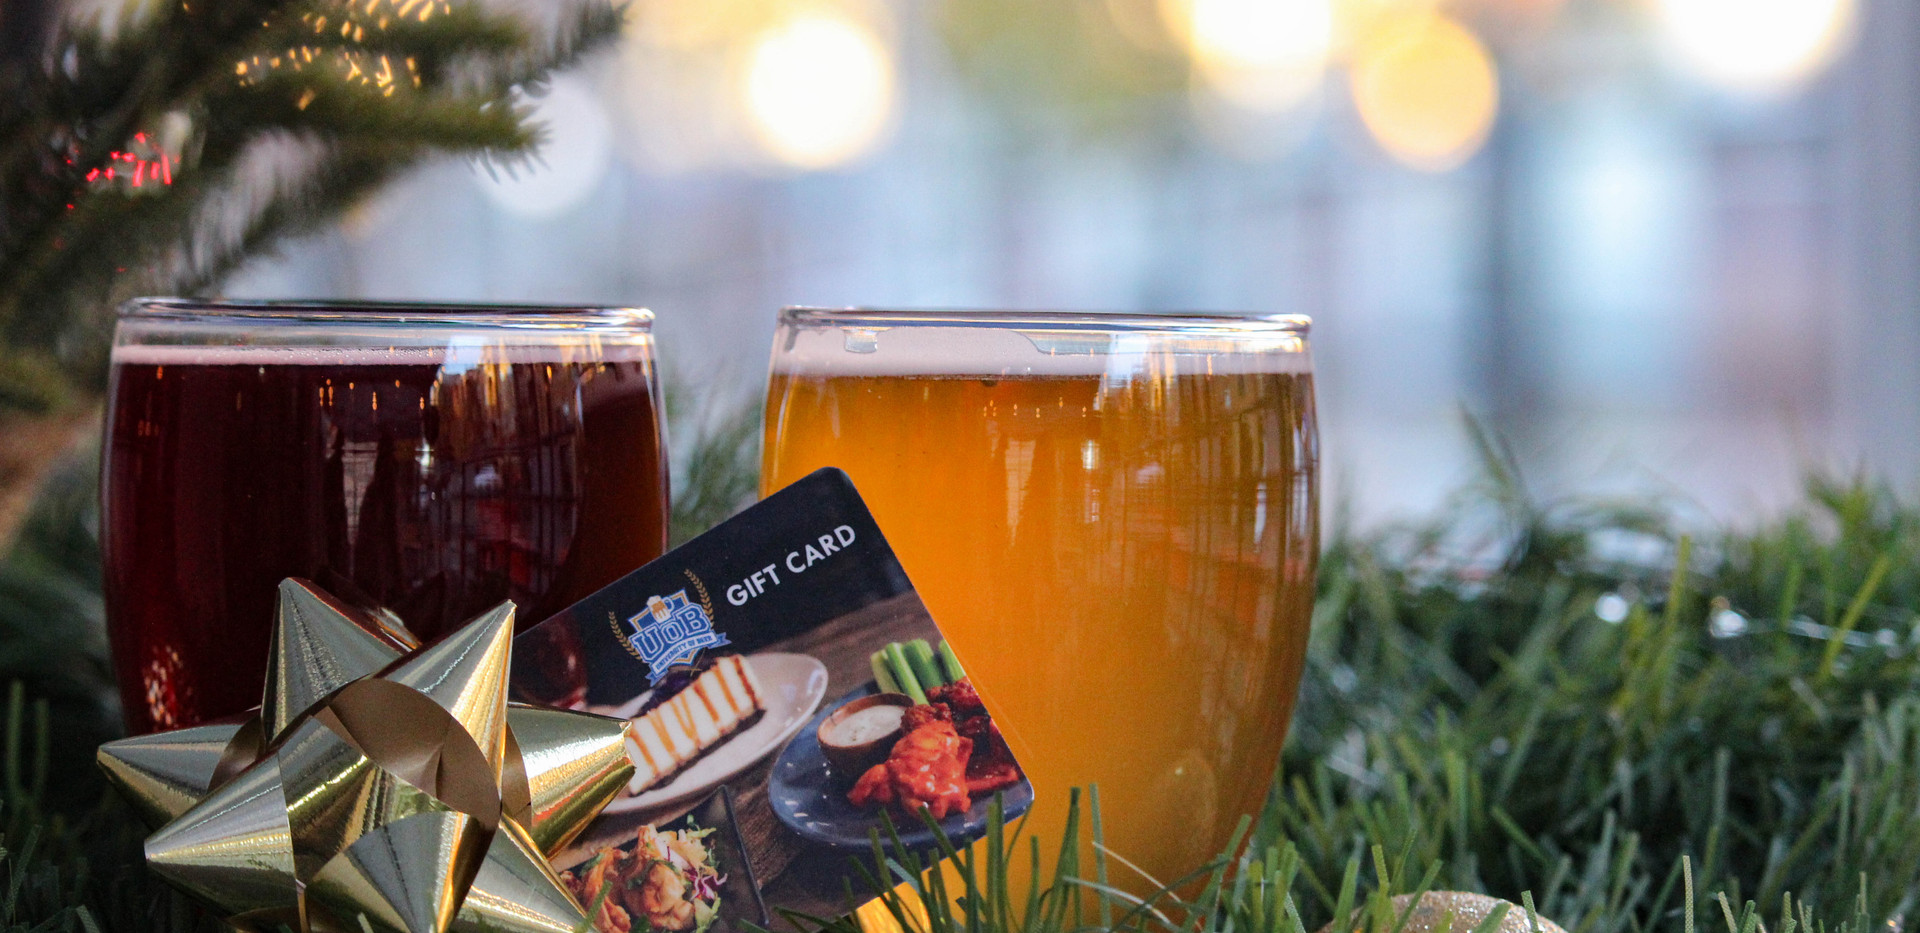 gift cards with beer-12.jpg